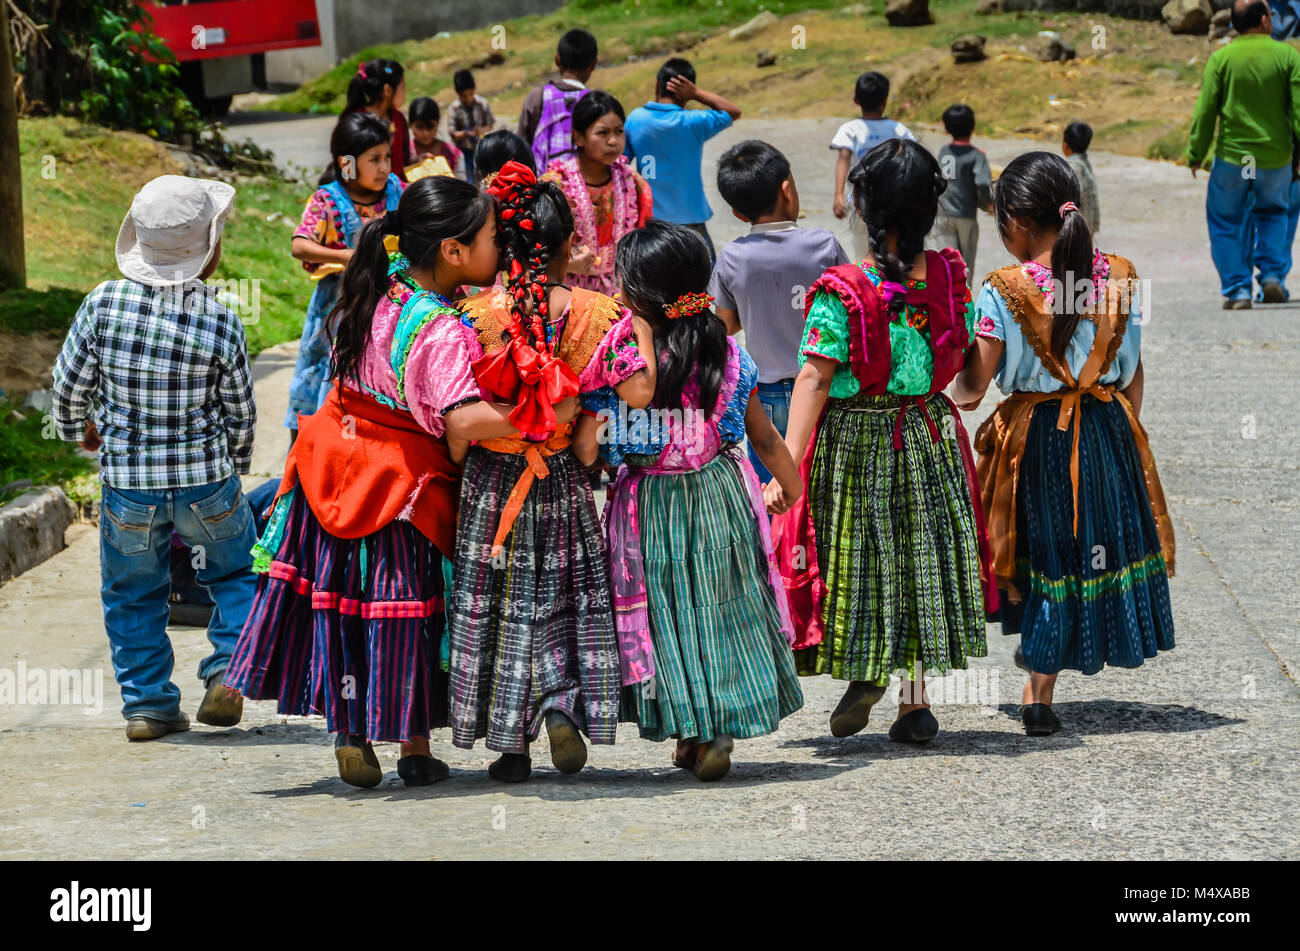 Group of Guatemalan school children walk on road, holding hands, when one little girl whispers in a friend's - Stock Image